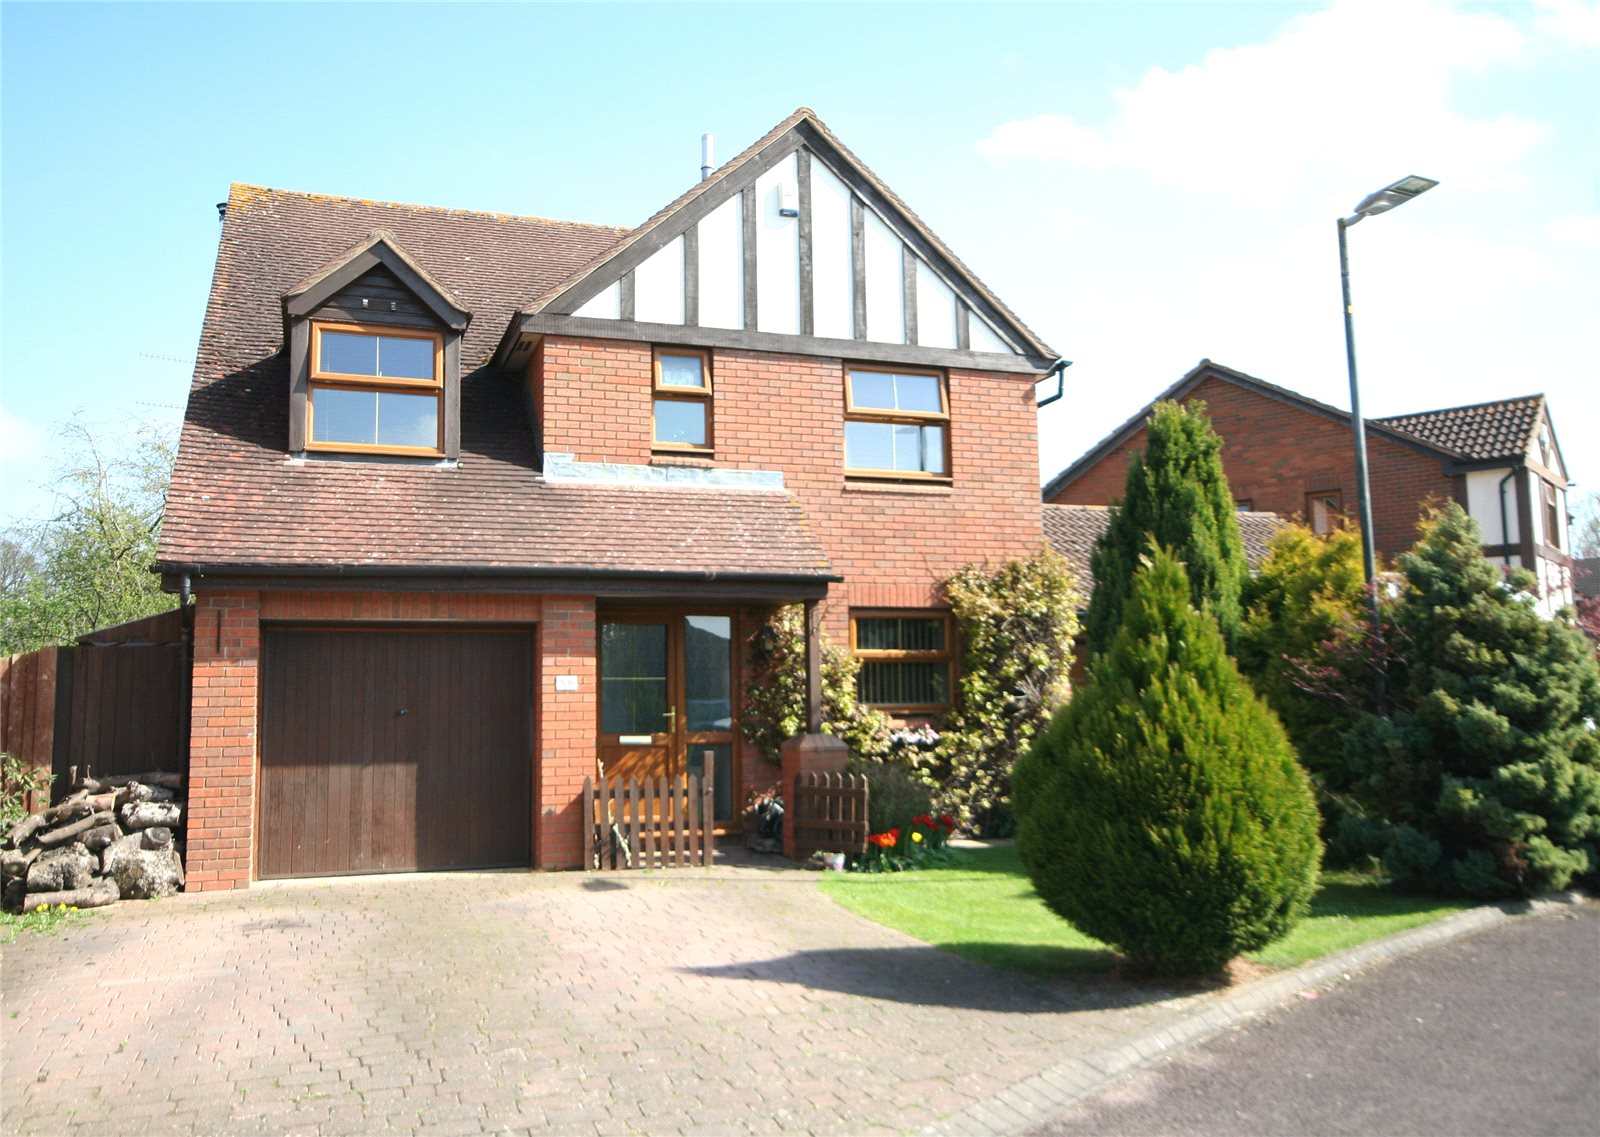 4 Bedrooms Detached House for sale in The Nurseries Bishops Cleeve Cheltenham GL52